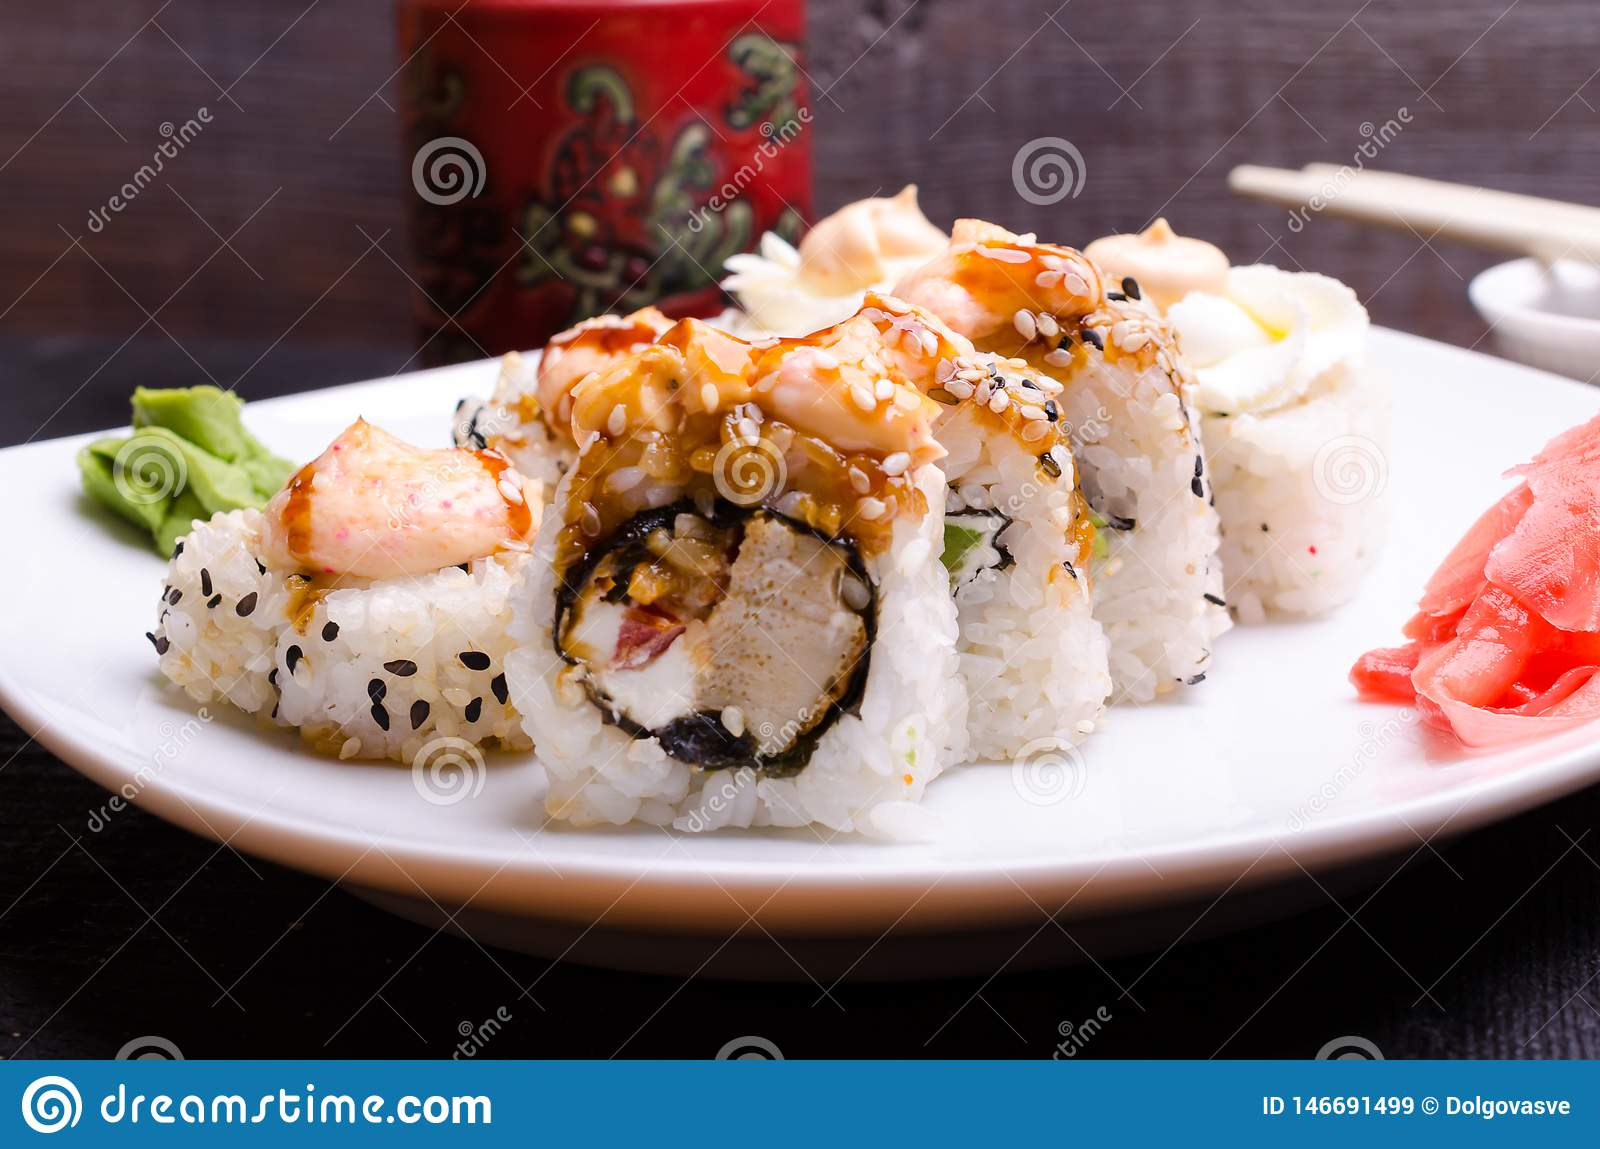 Sushi rolls on a white platter with ginger